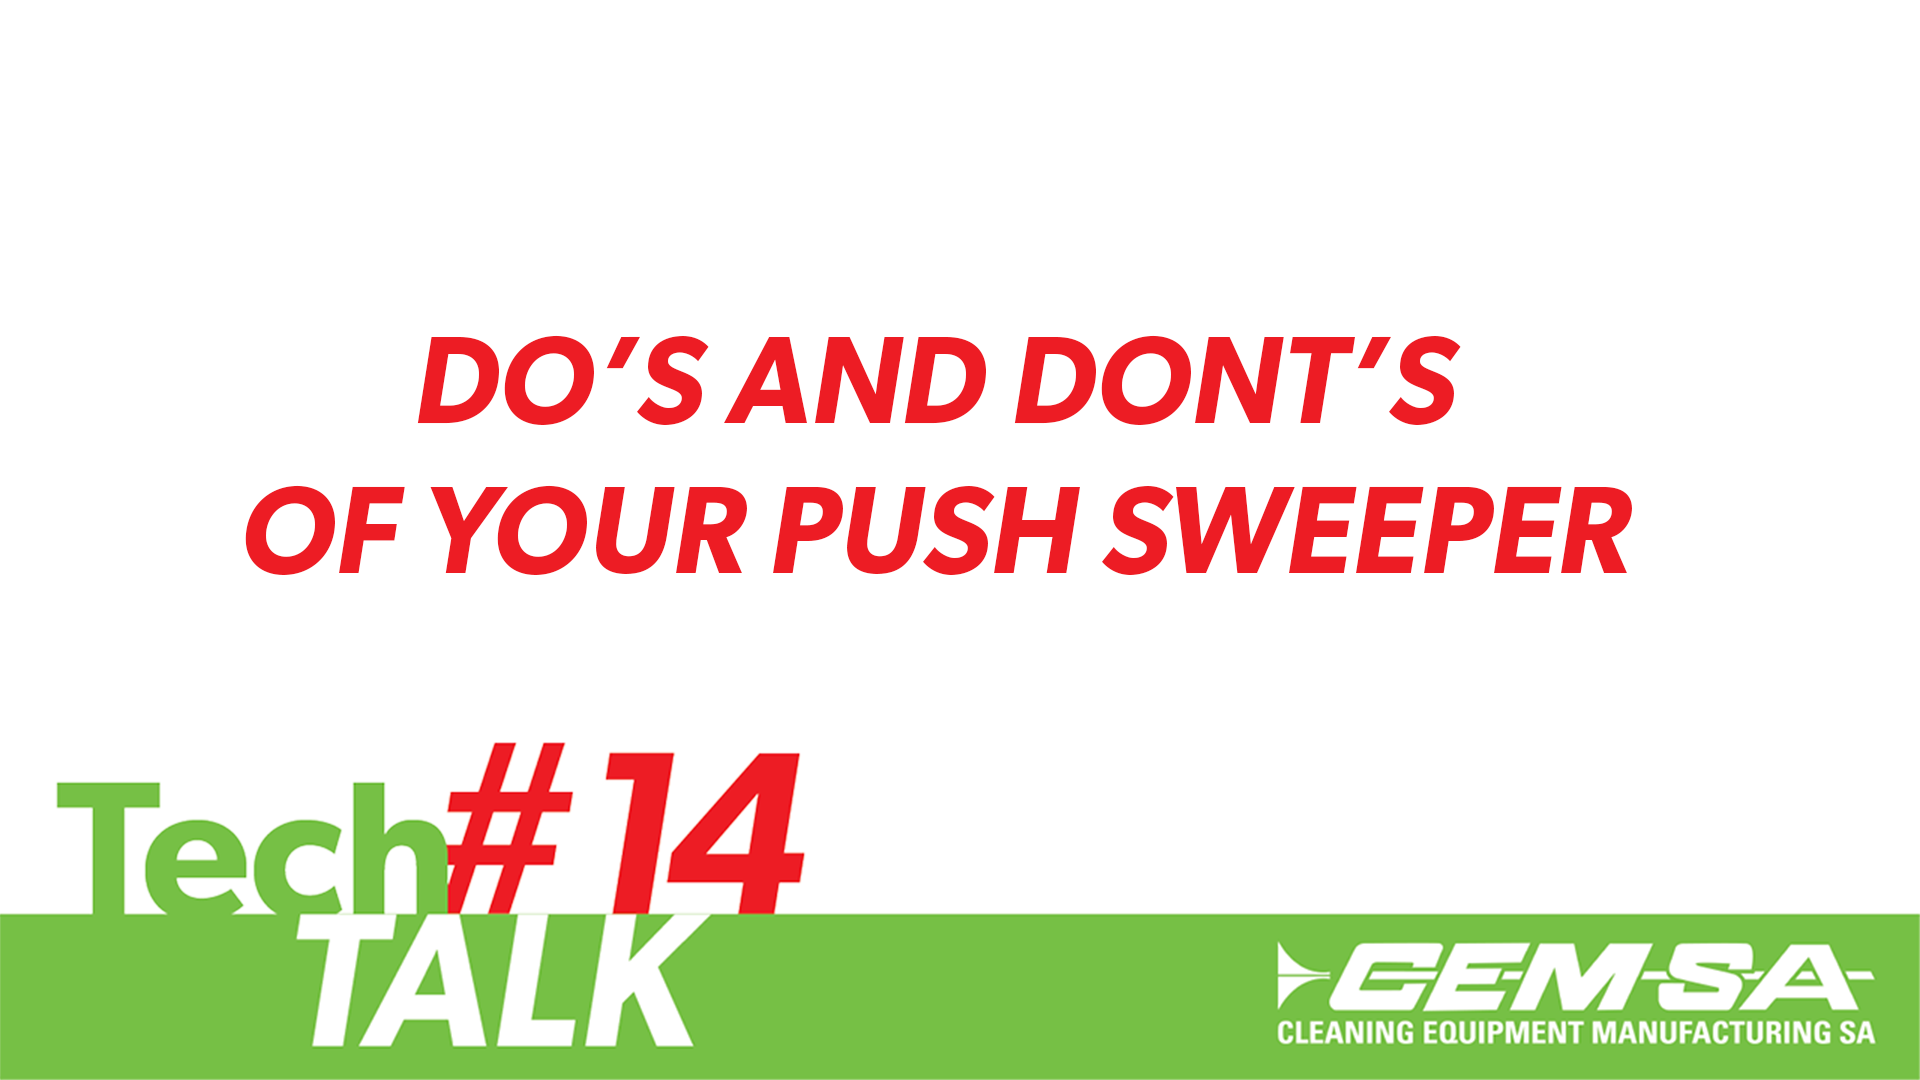 TechTalk #14- Dos & Don'ts of Your Push Sweeper